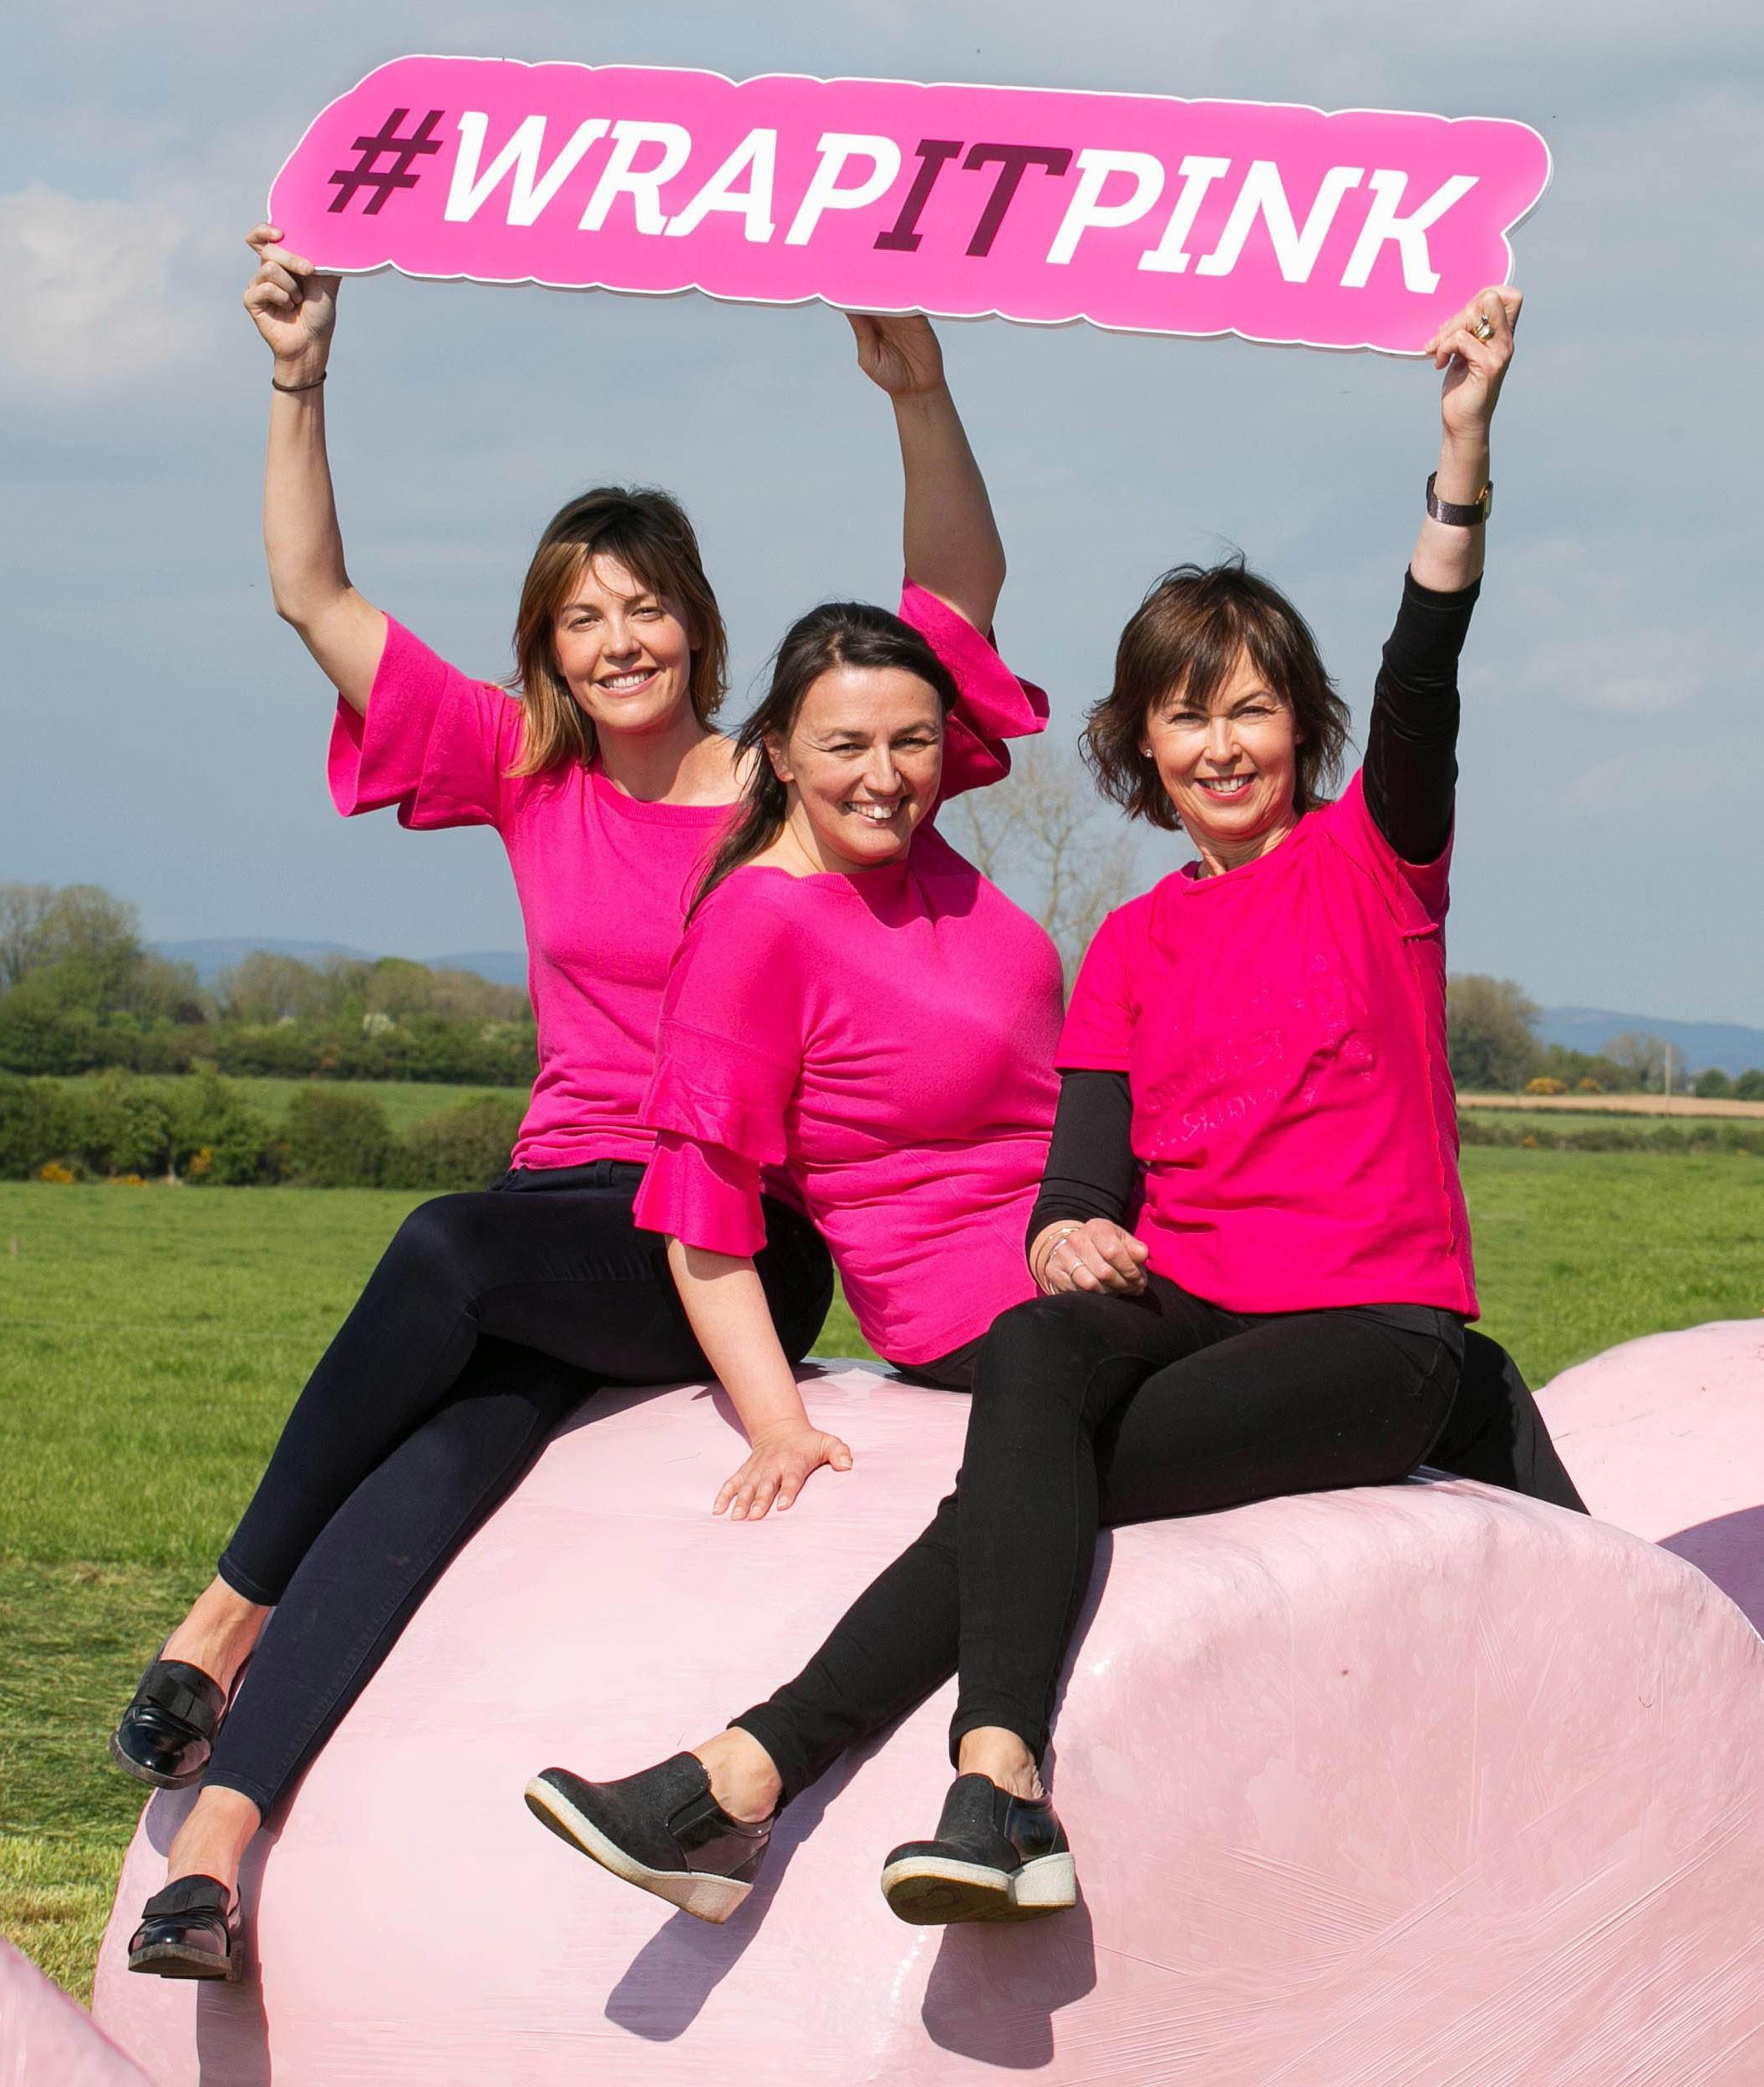 Wrap It Pink: Rural Ireland Turns Pink for Third Year Running!